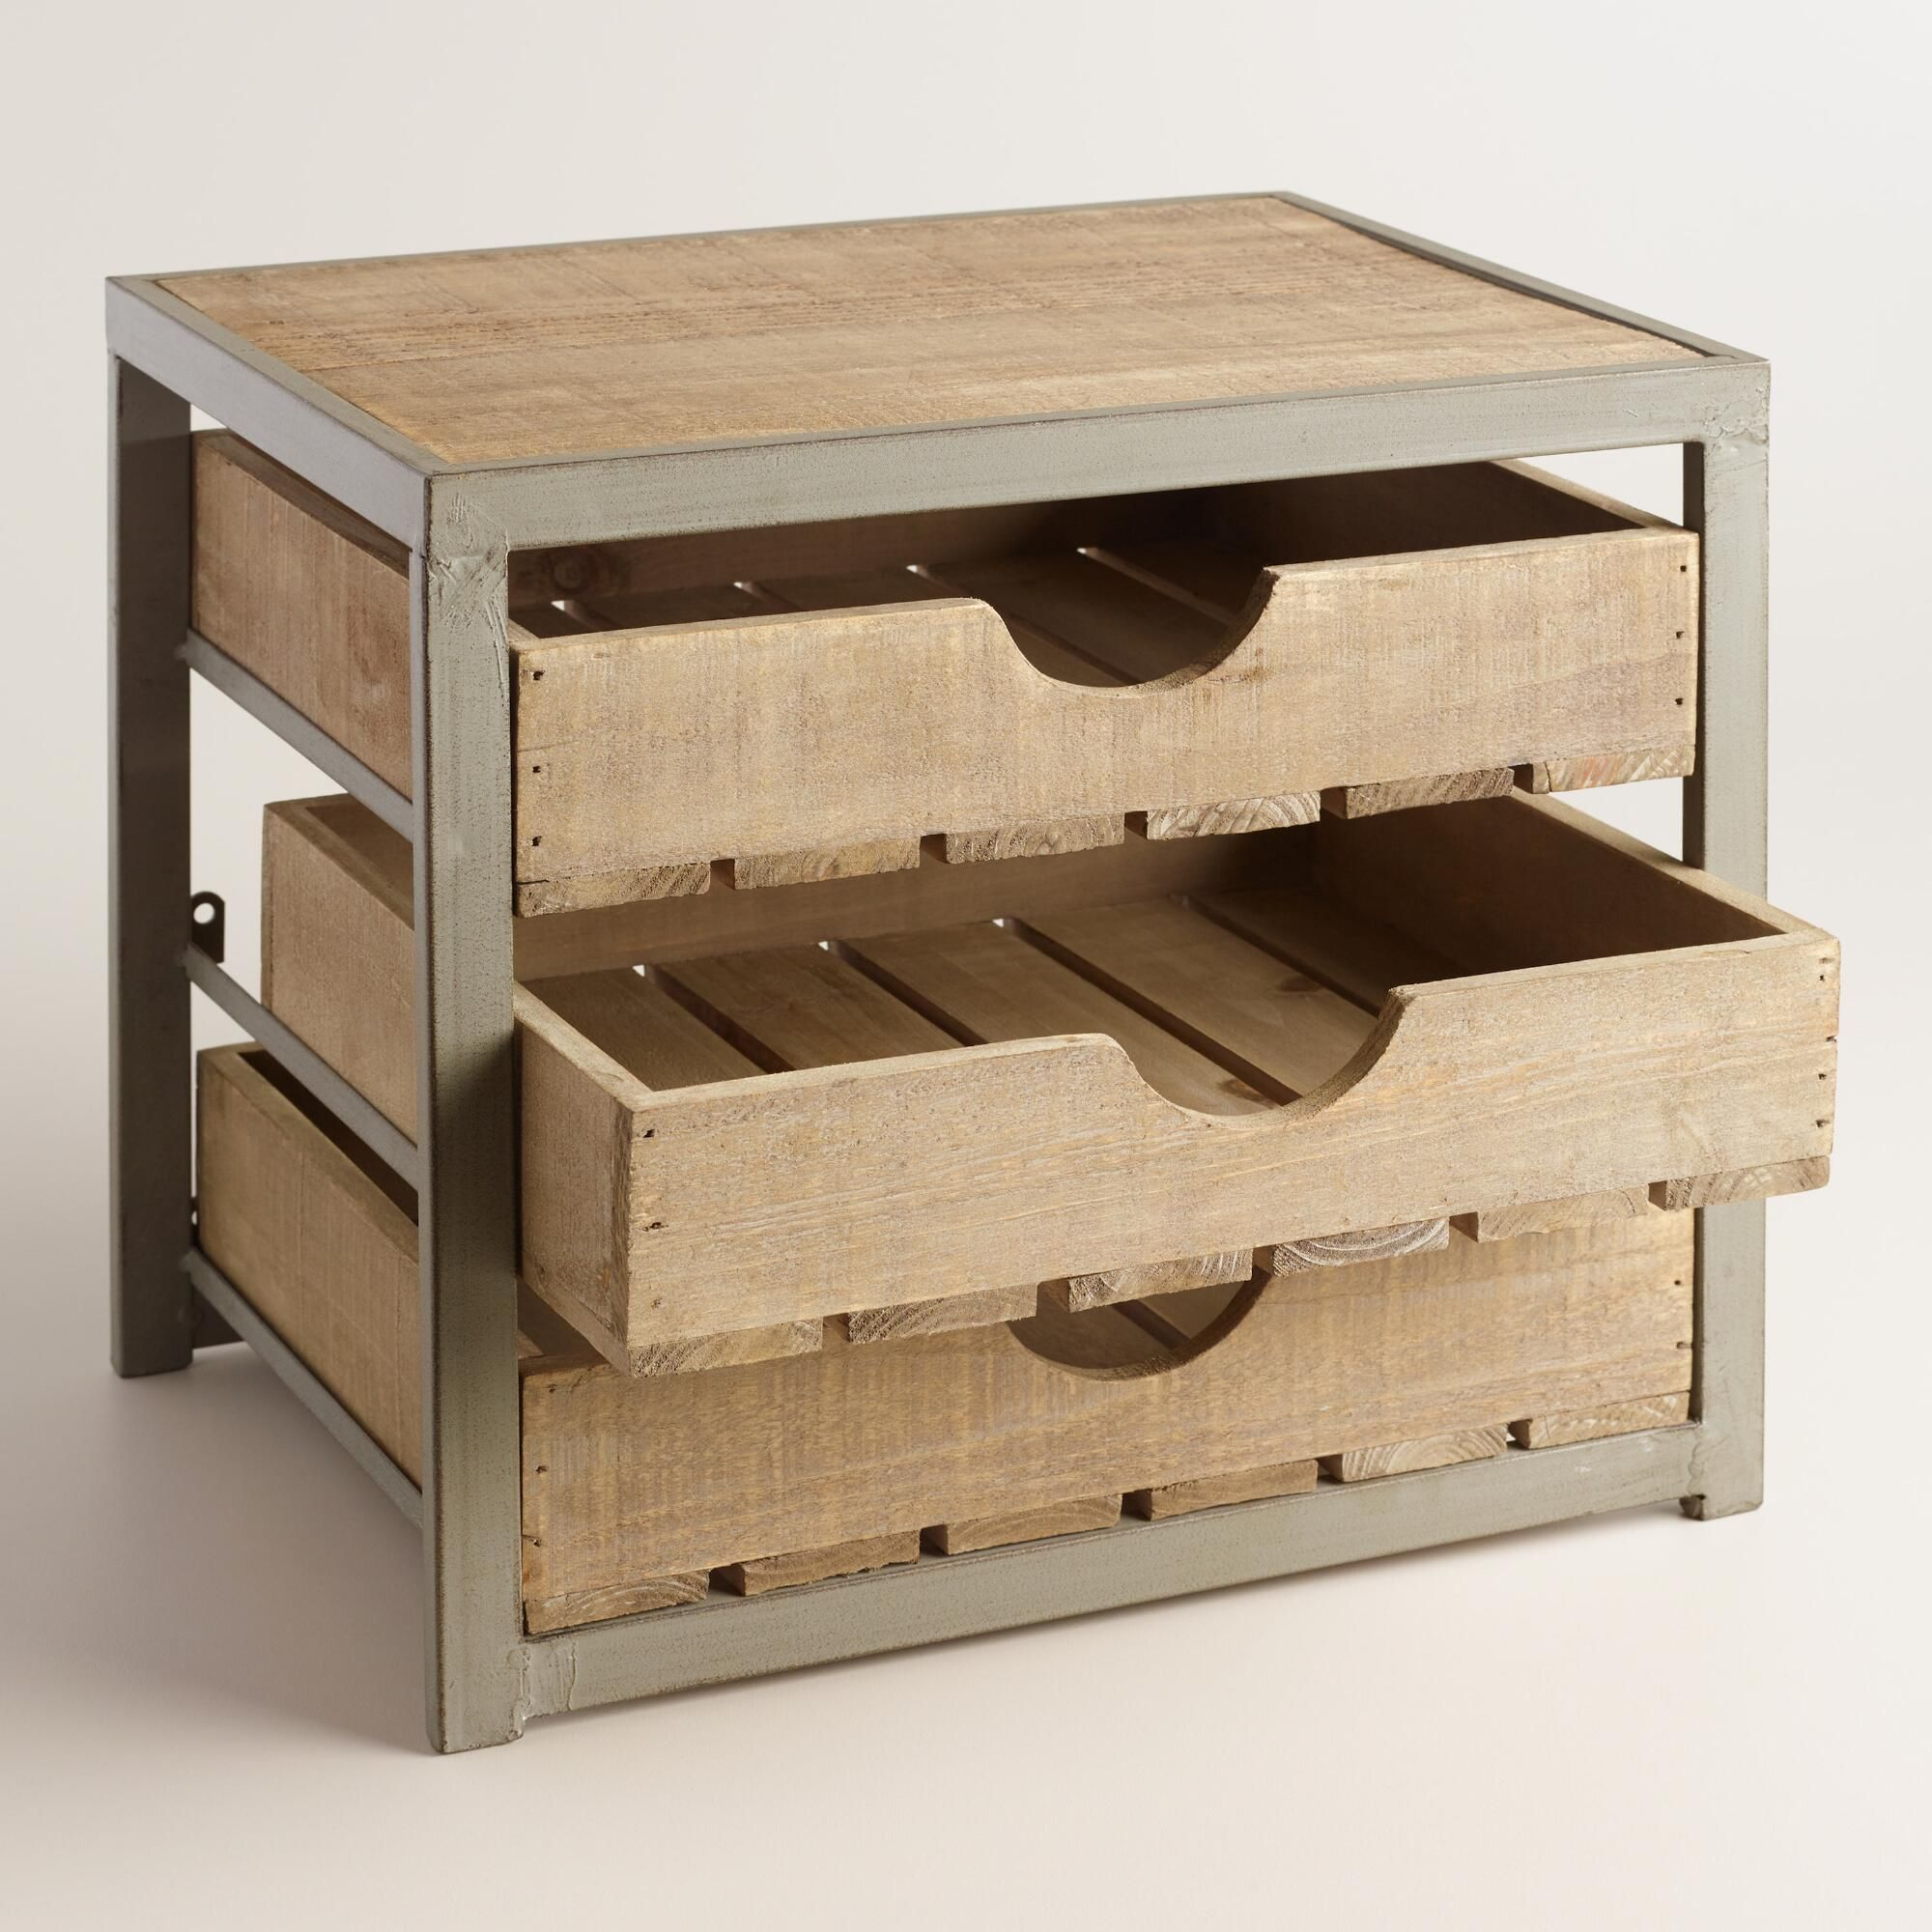 Give Your Desktop Storage A Rustic Appeal With Our Apple